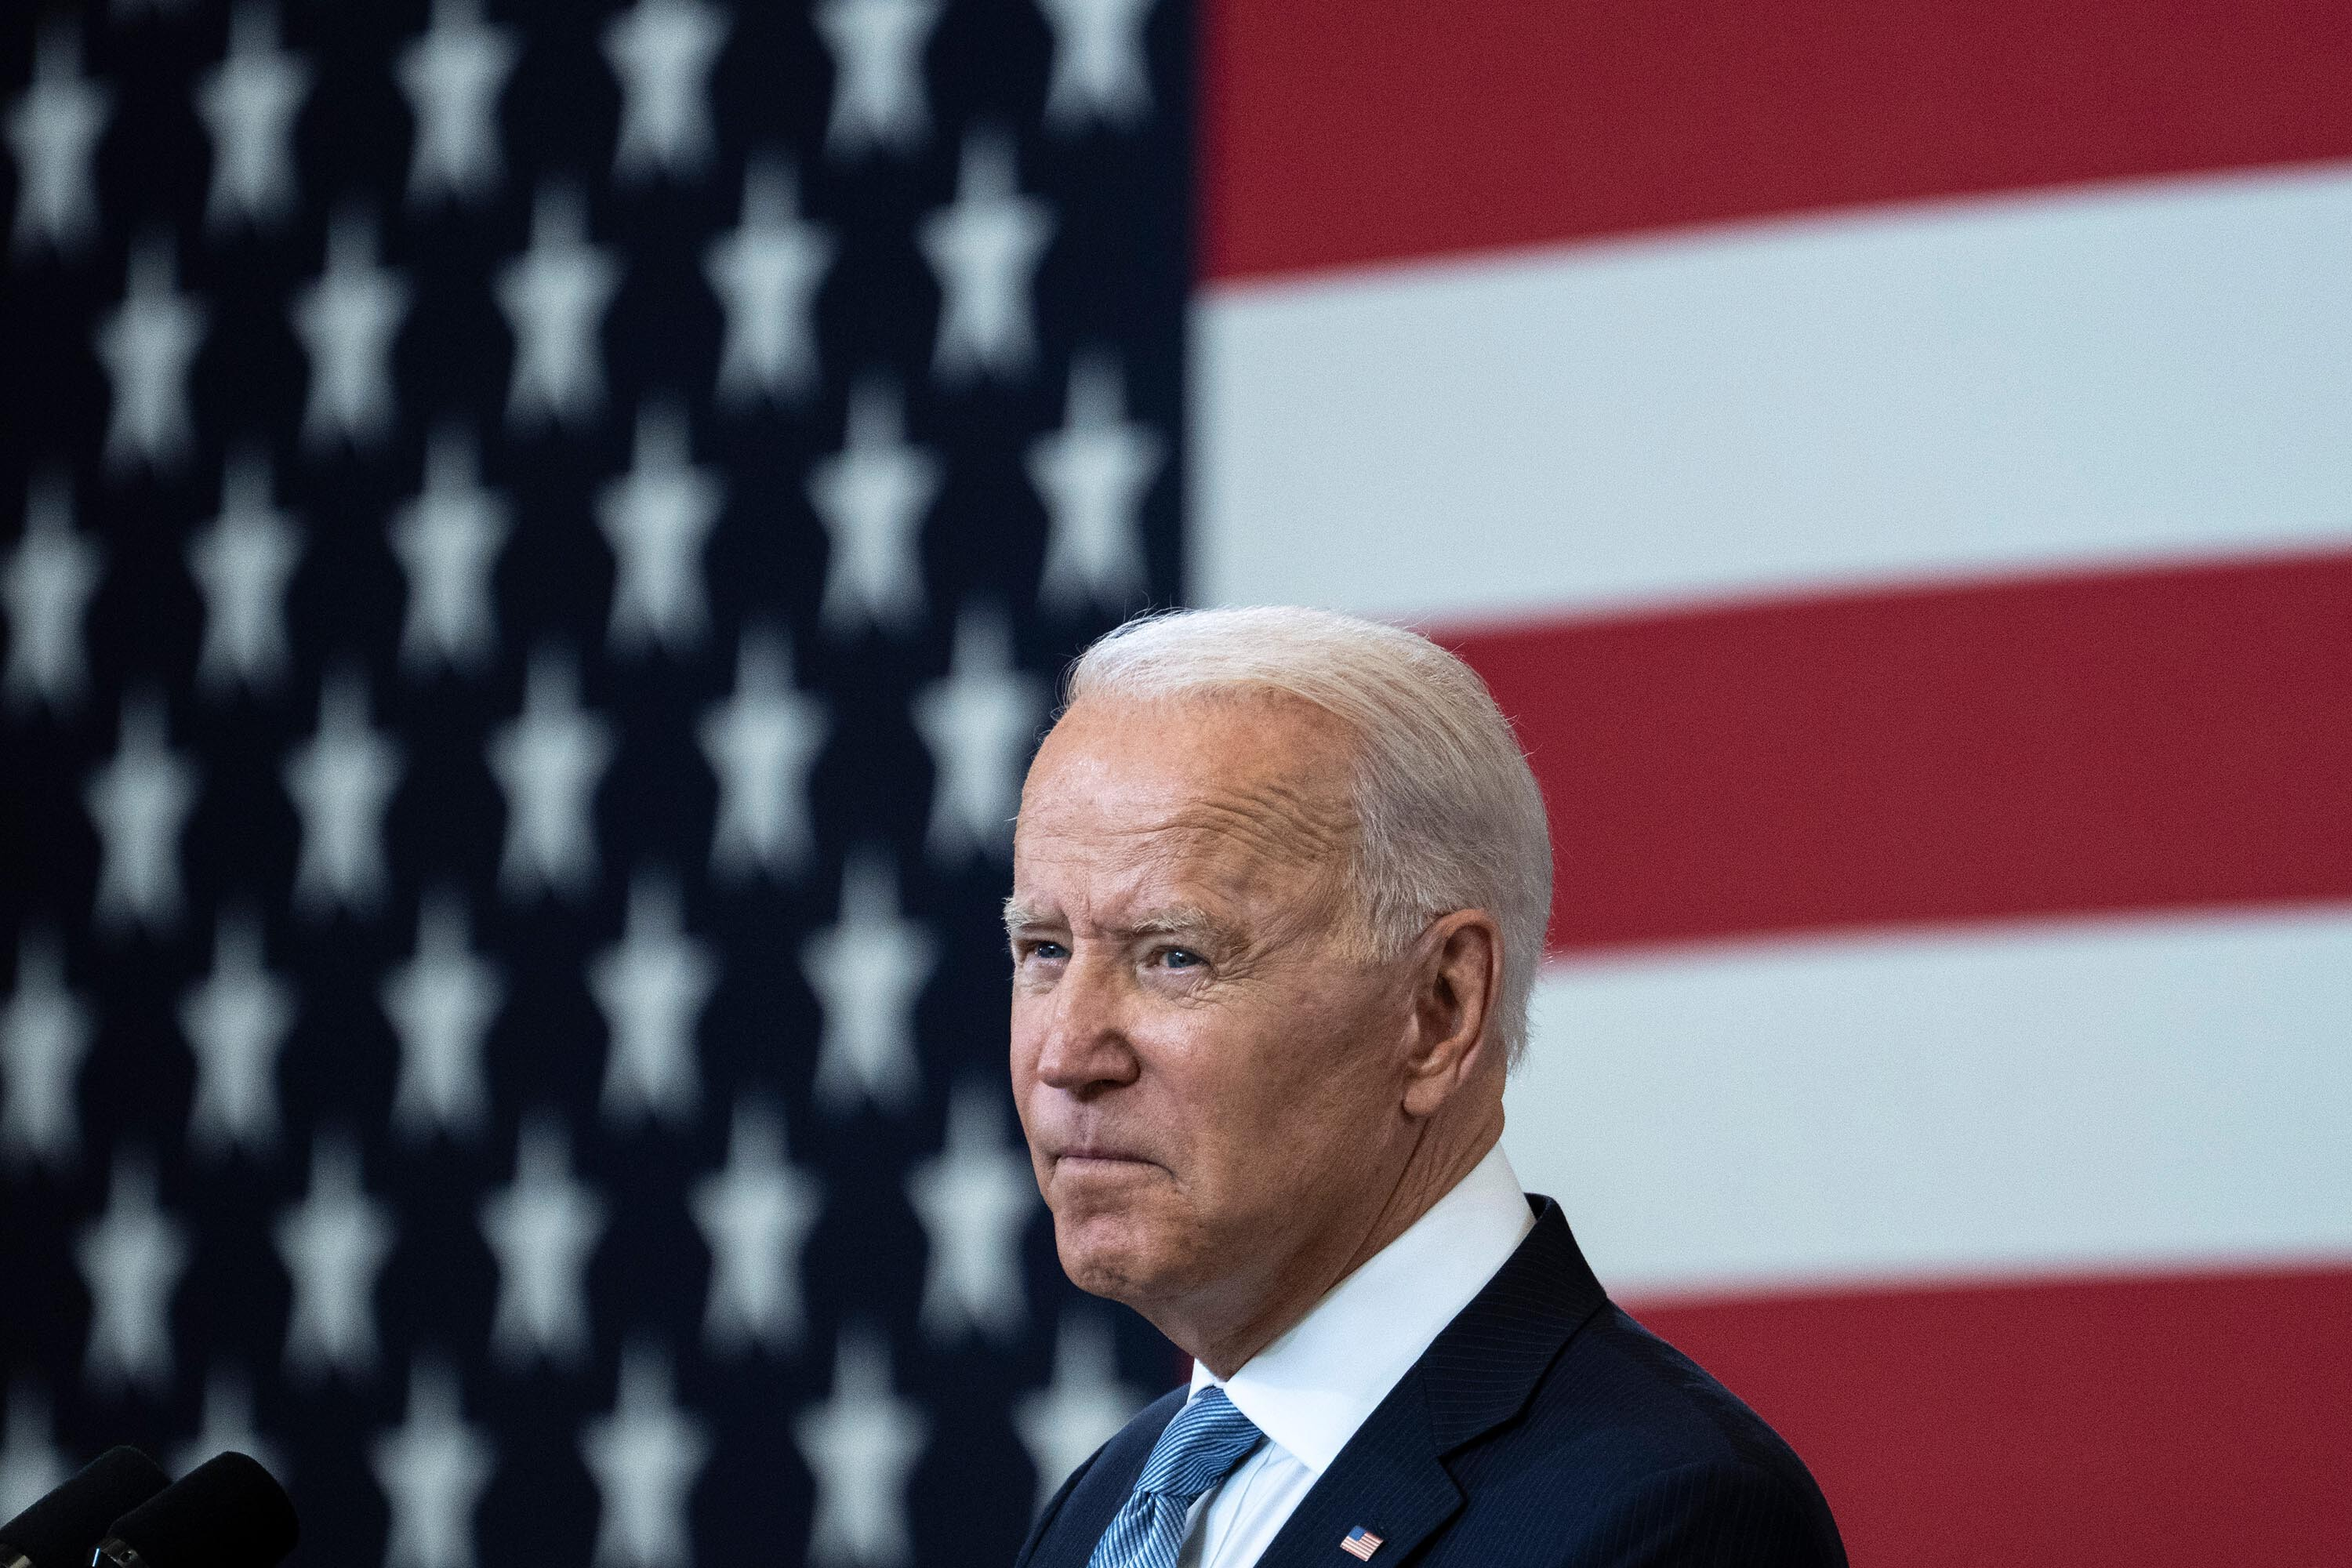 Biden takes on inflation concerns as domestic agenda hangs in the balance: 'These disruptions are temporary'